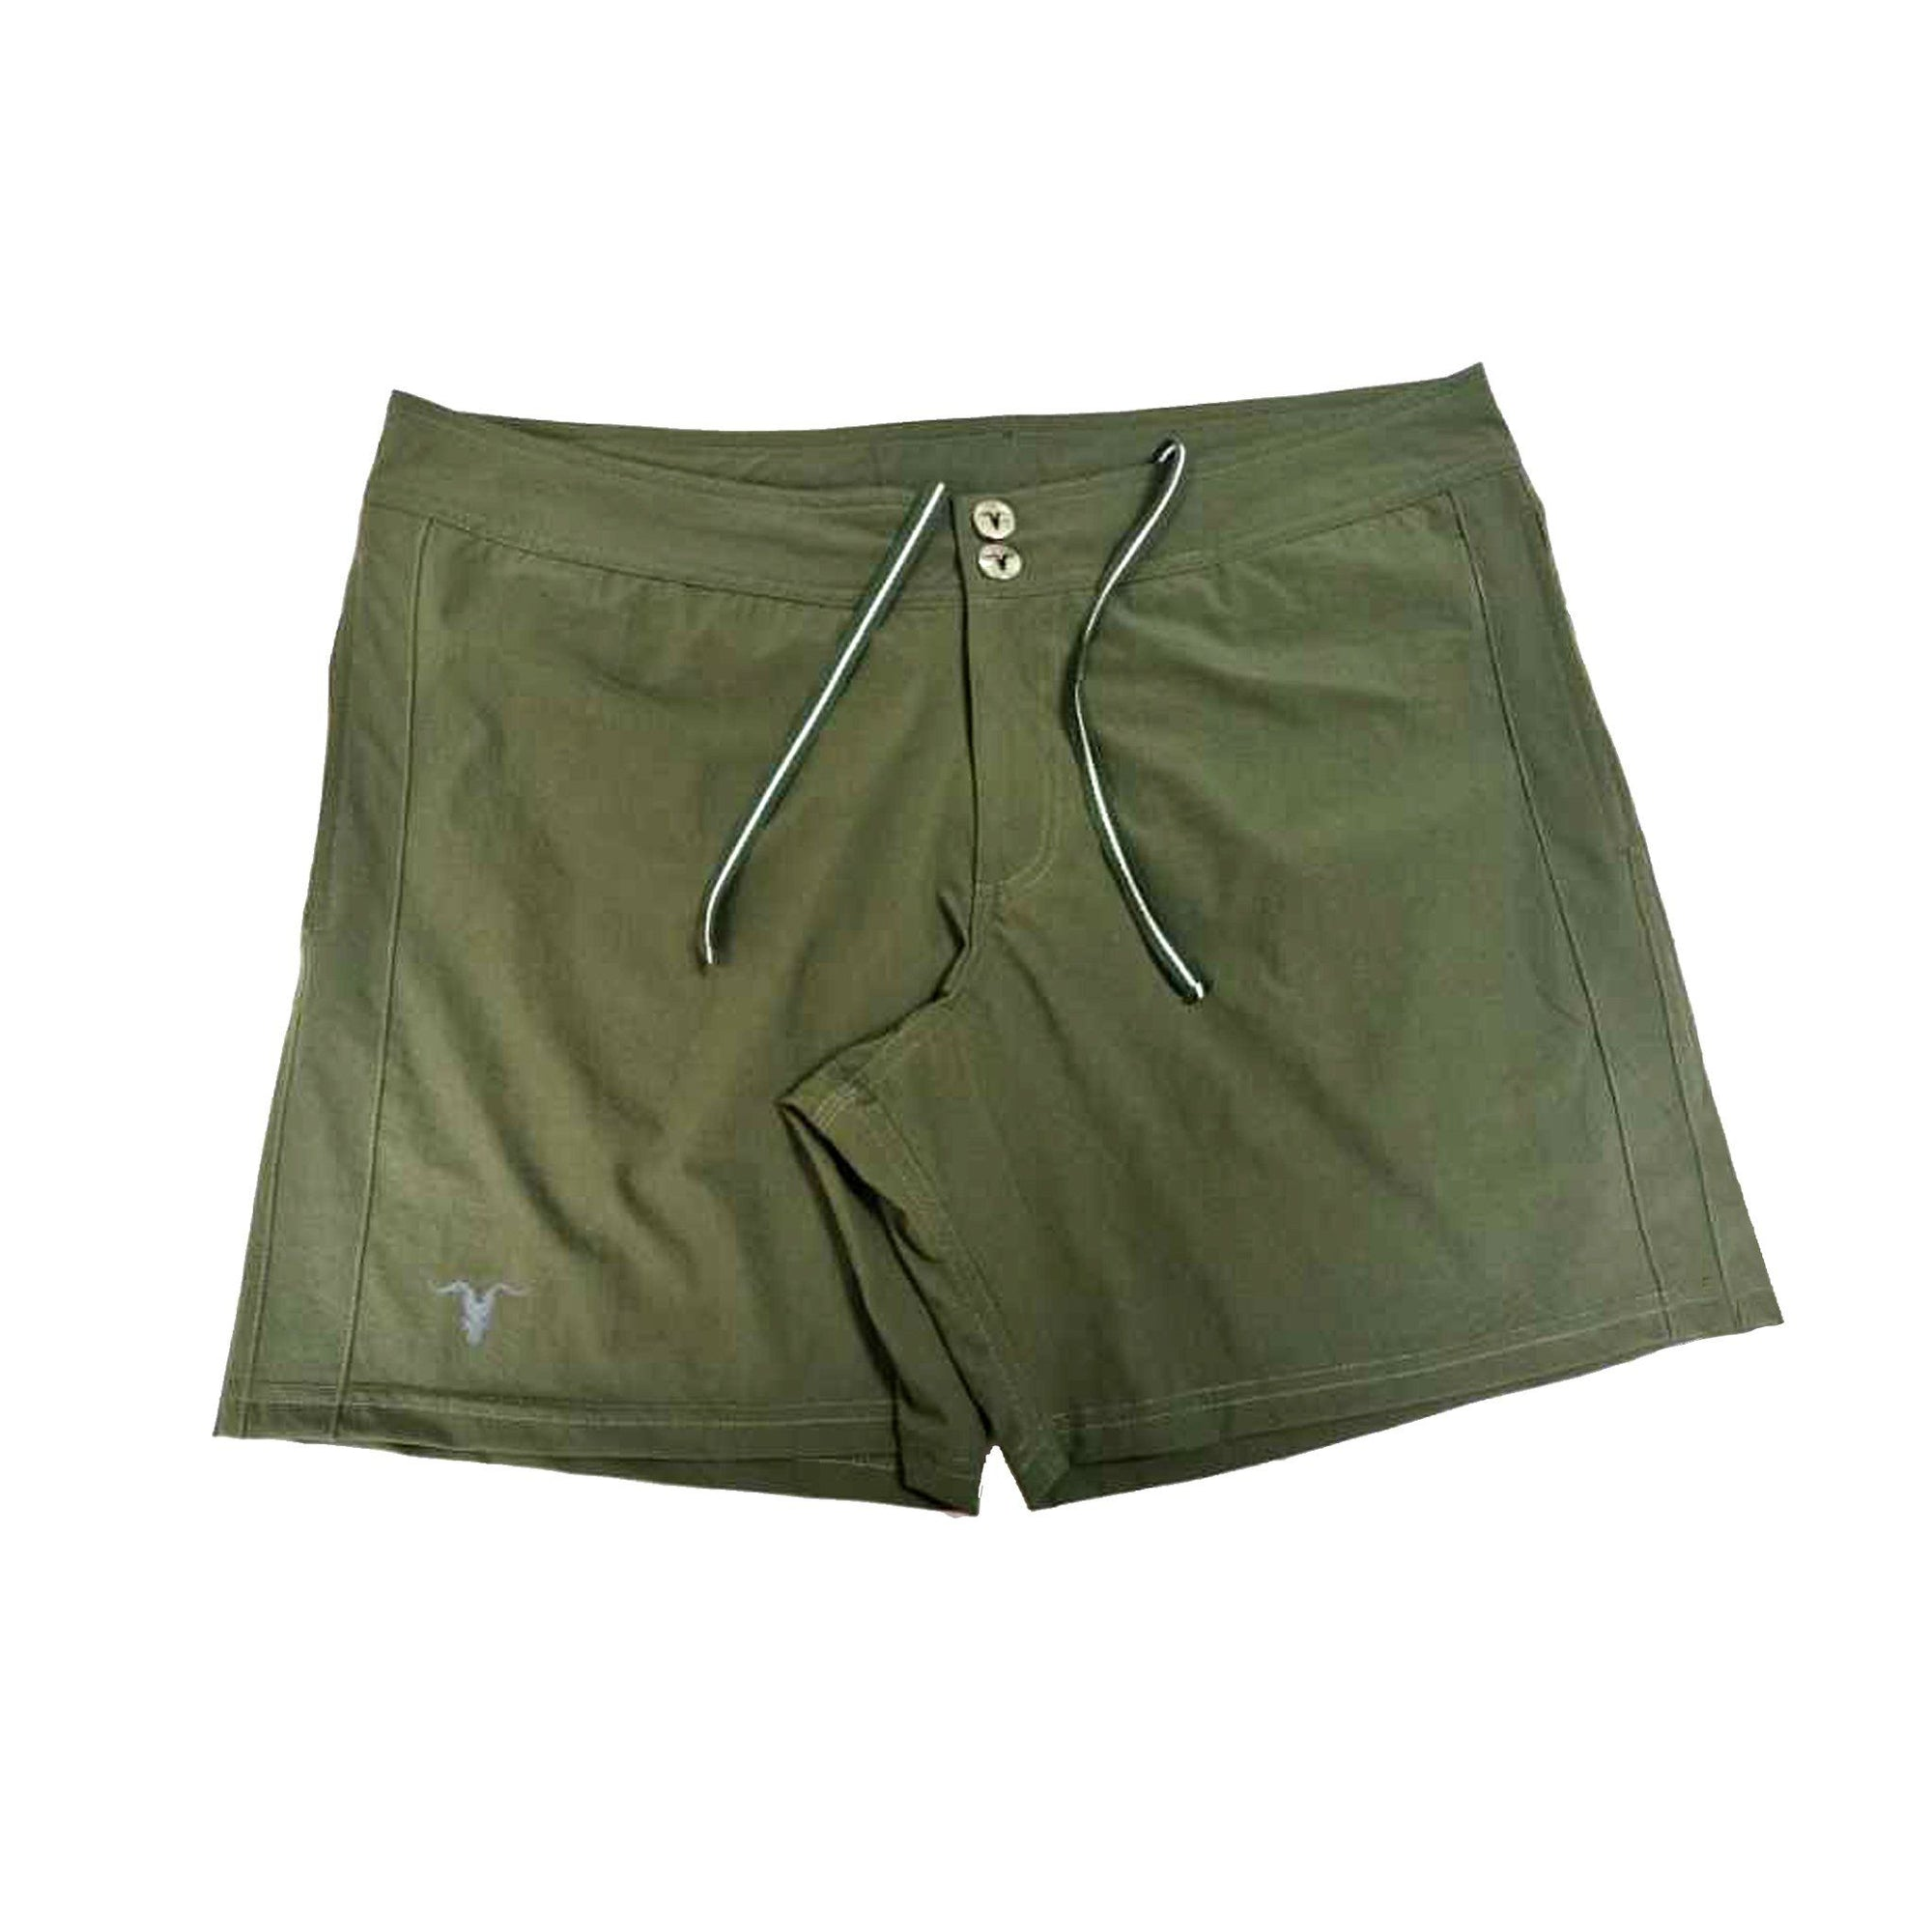 Men's Swim Shorts - Green